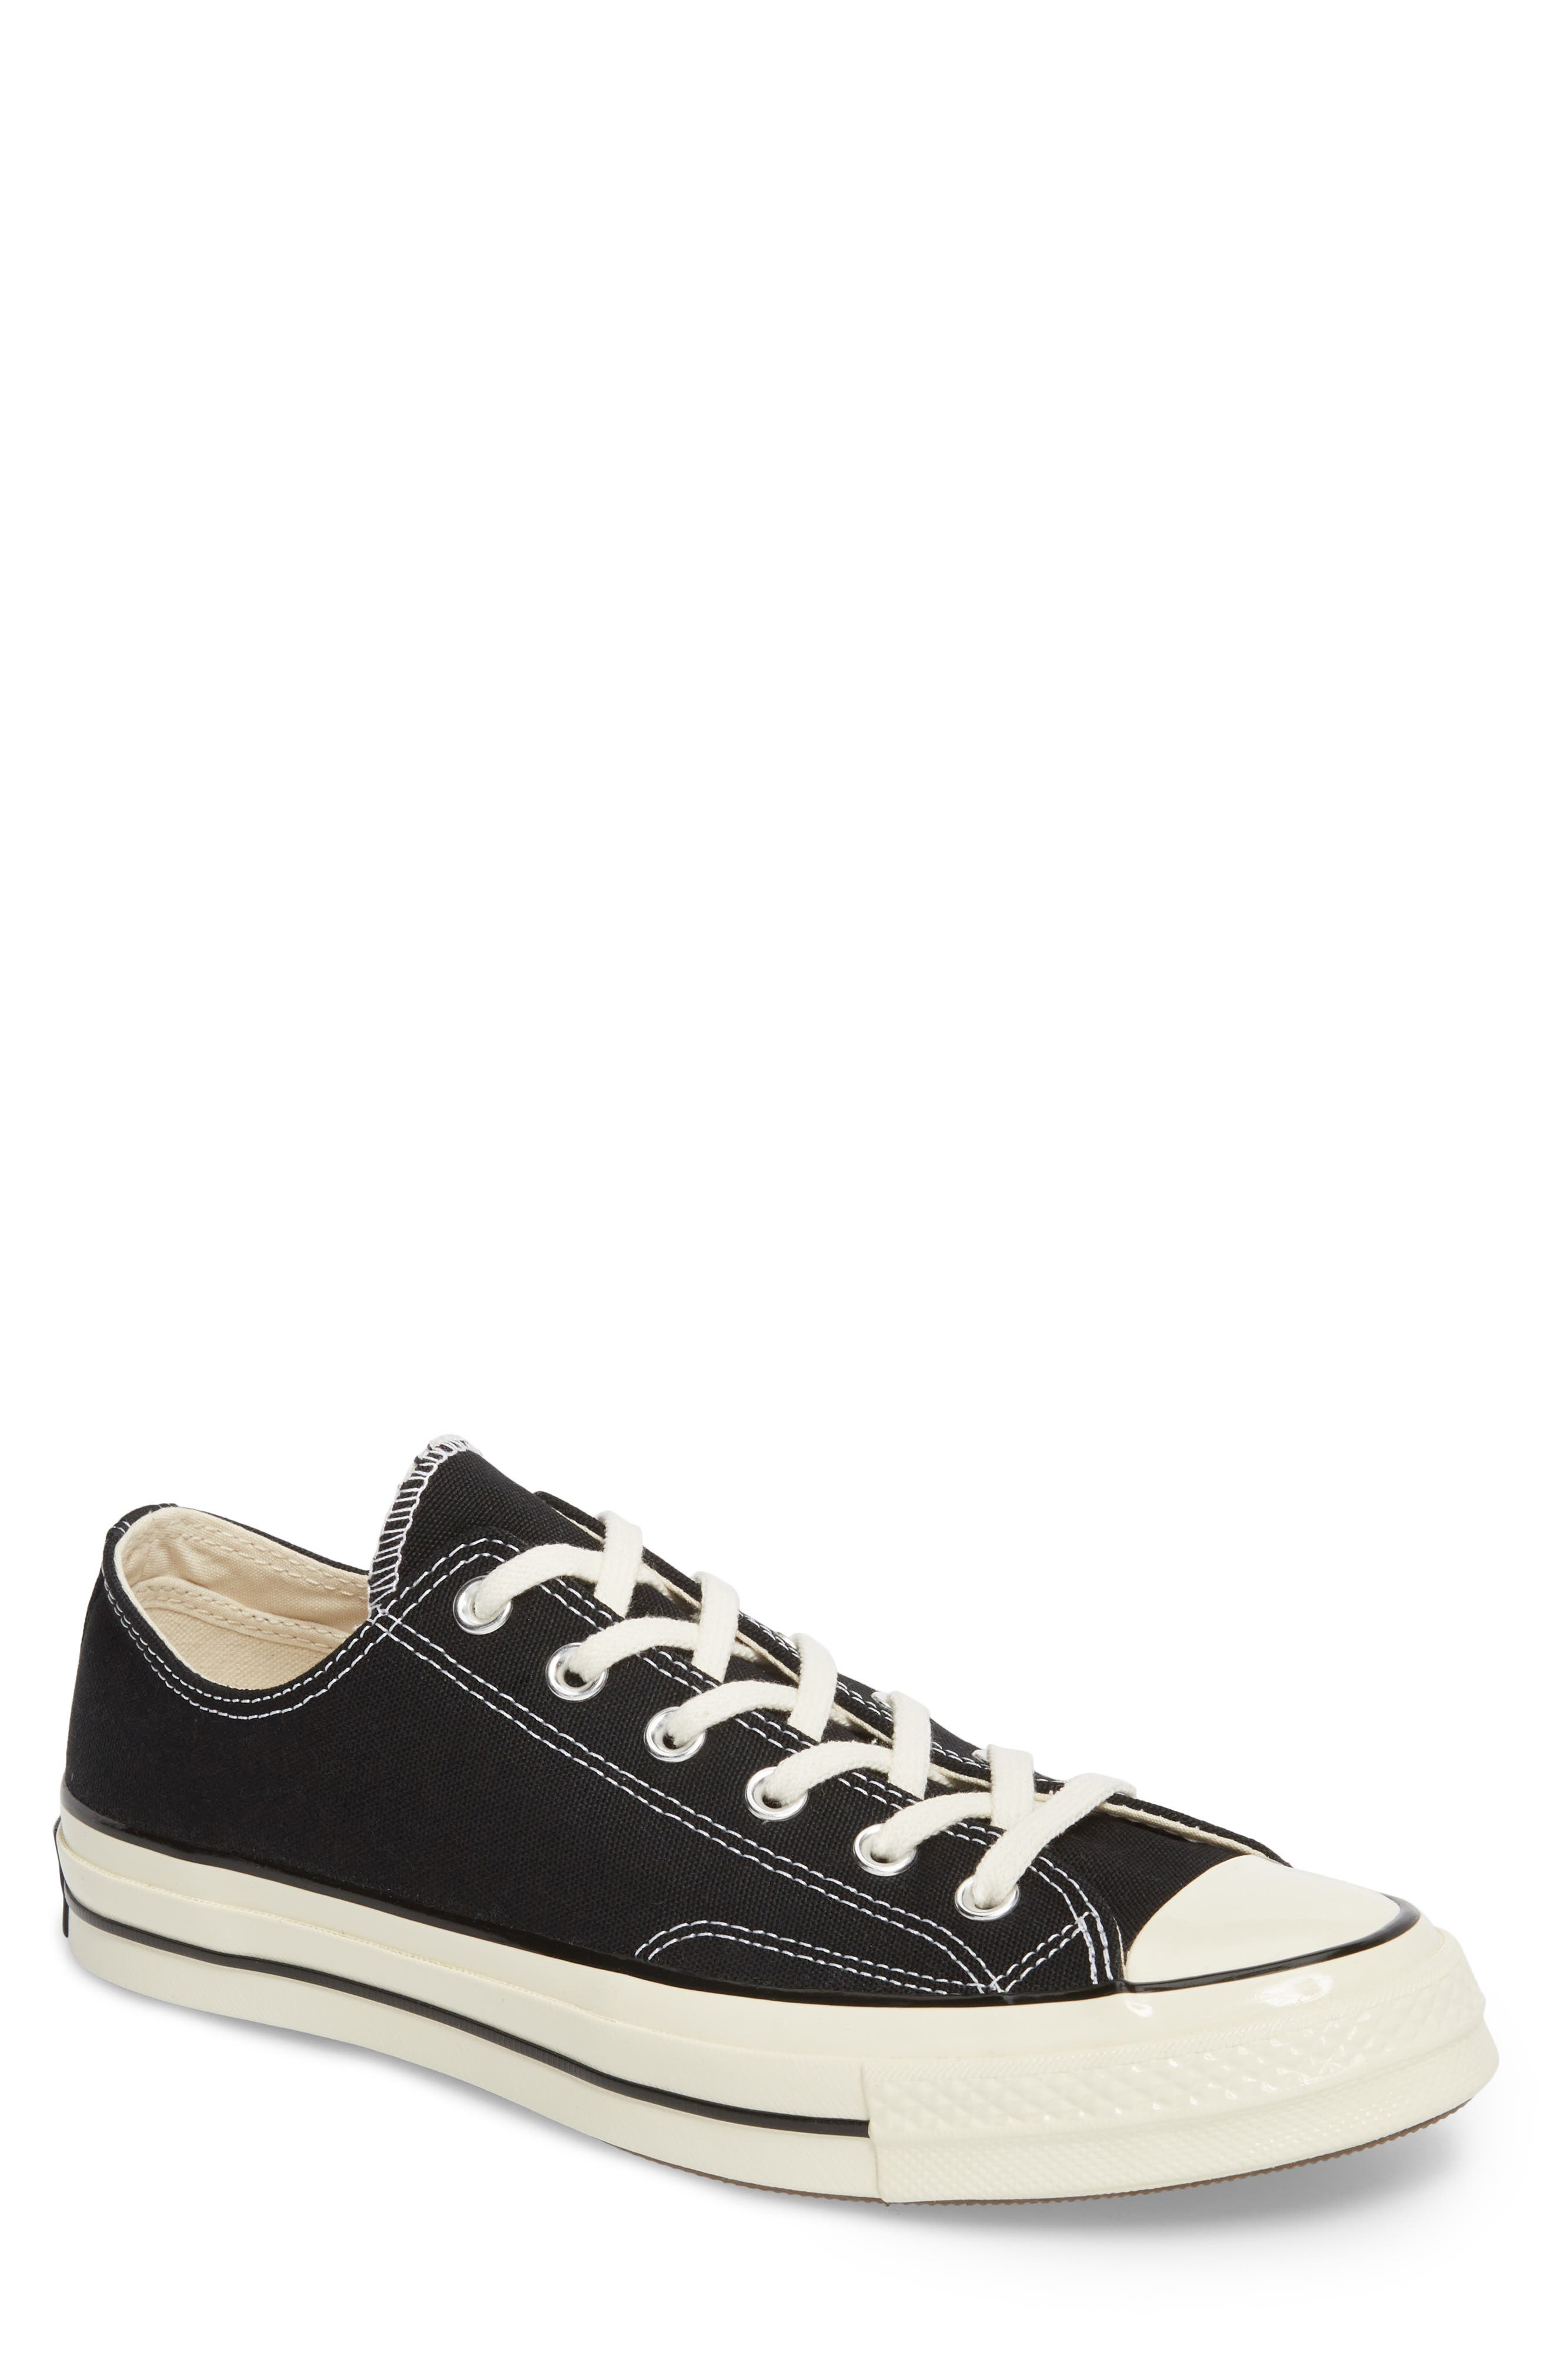 Chuck Taylor<sup>®</sup> All Star<sup>®</sup> 70 Low Top Sneaker,                         Main,                         color, BLACK